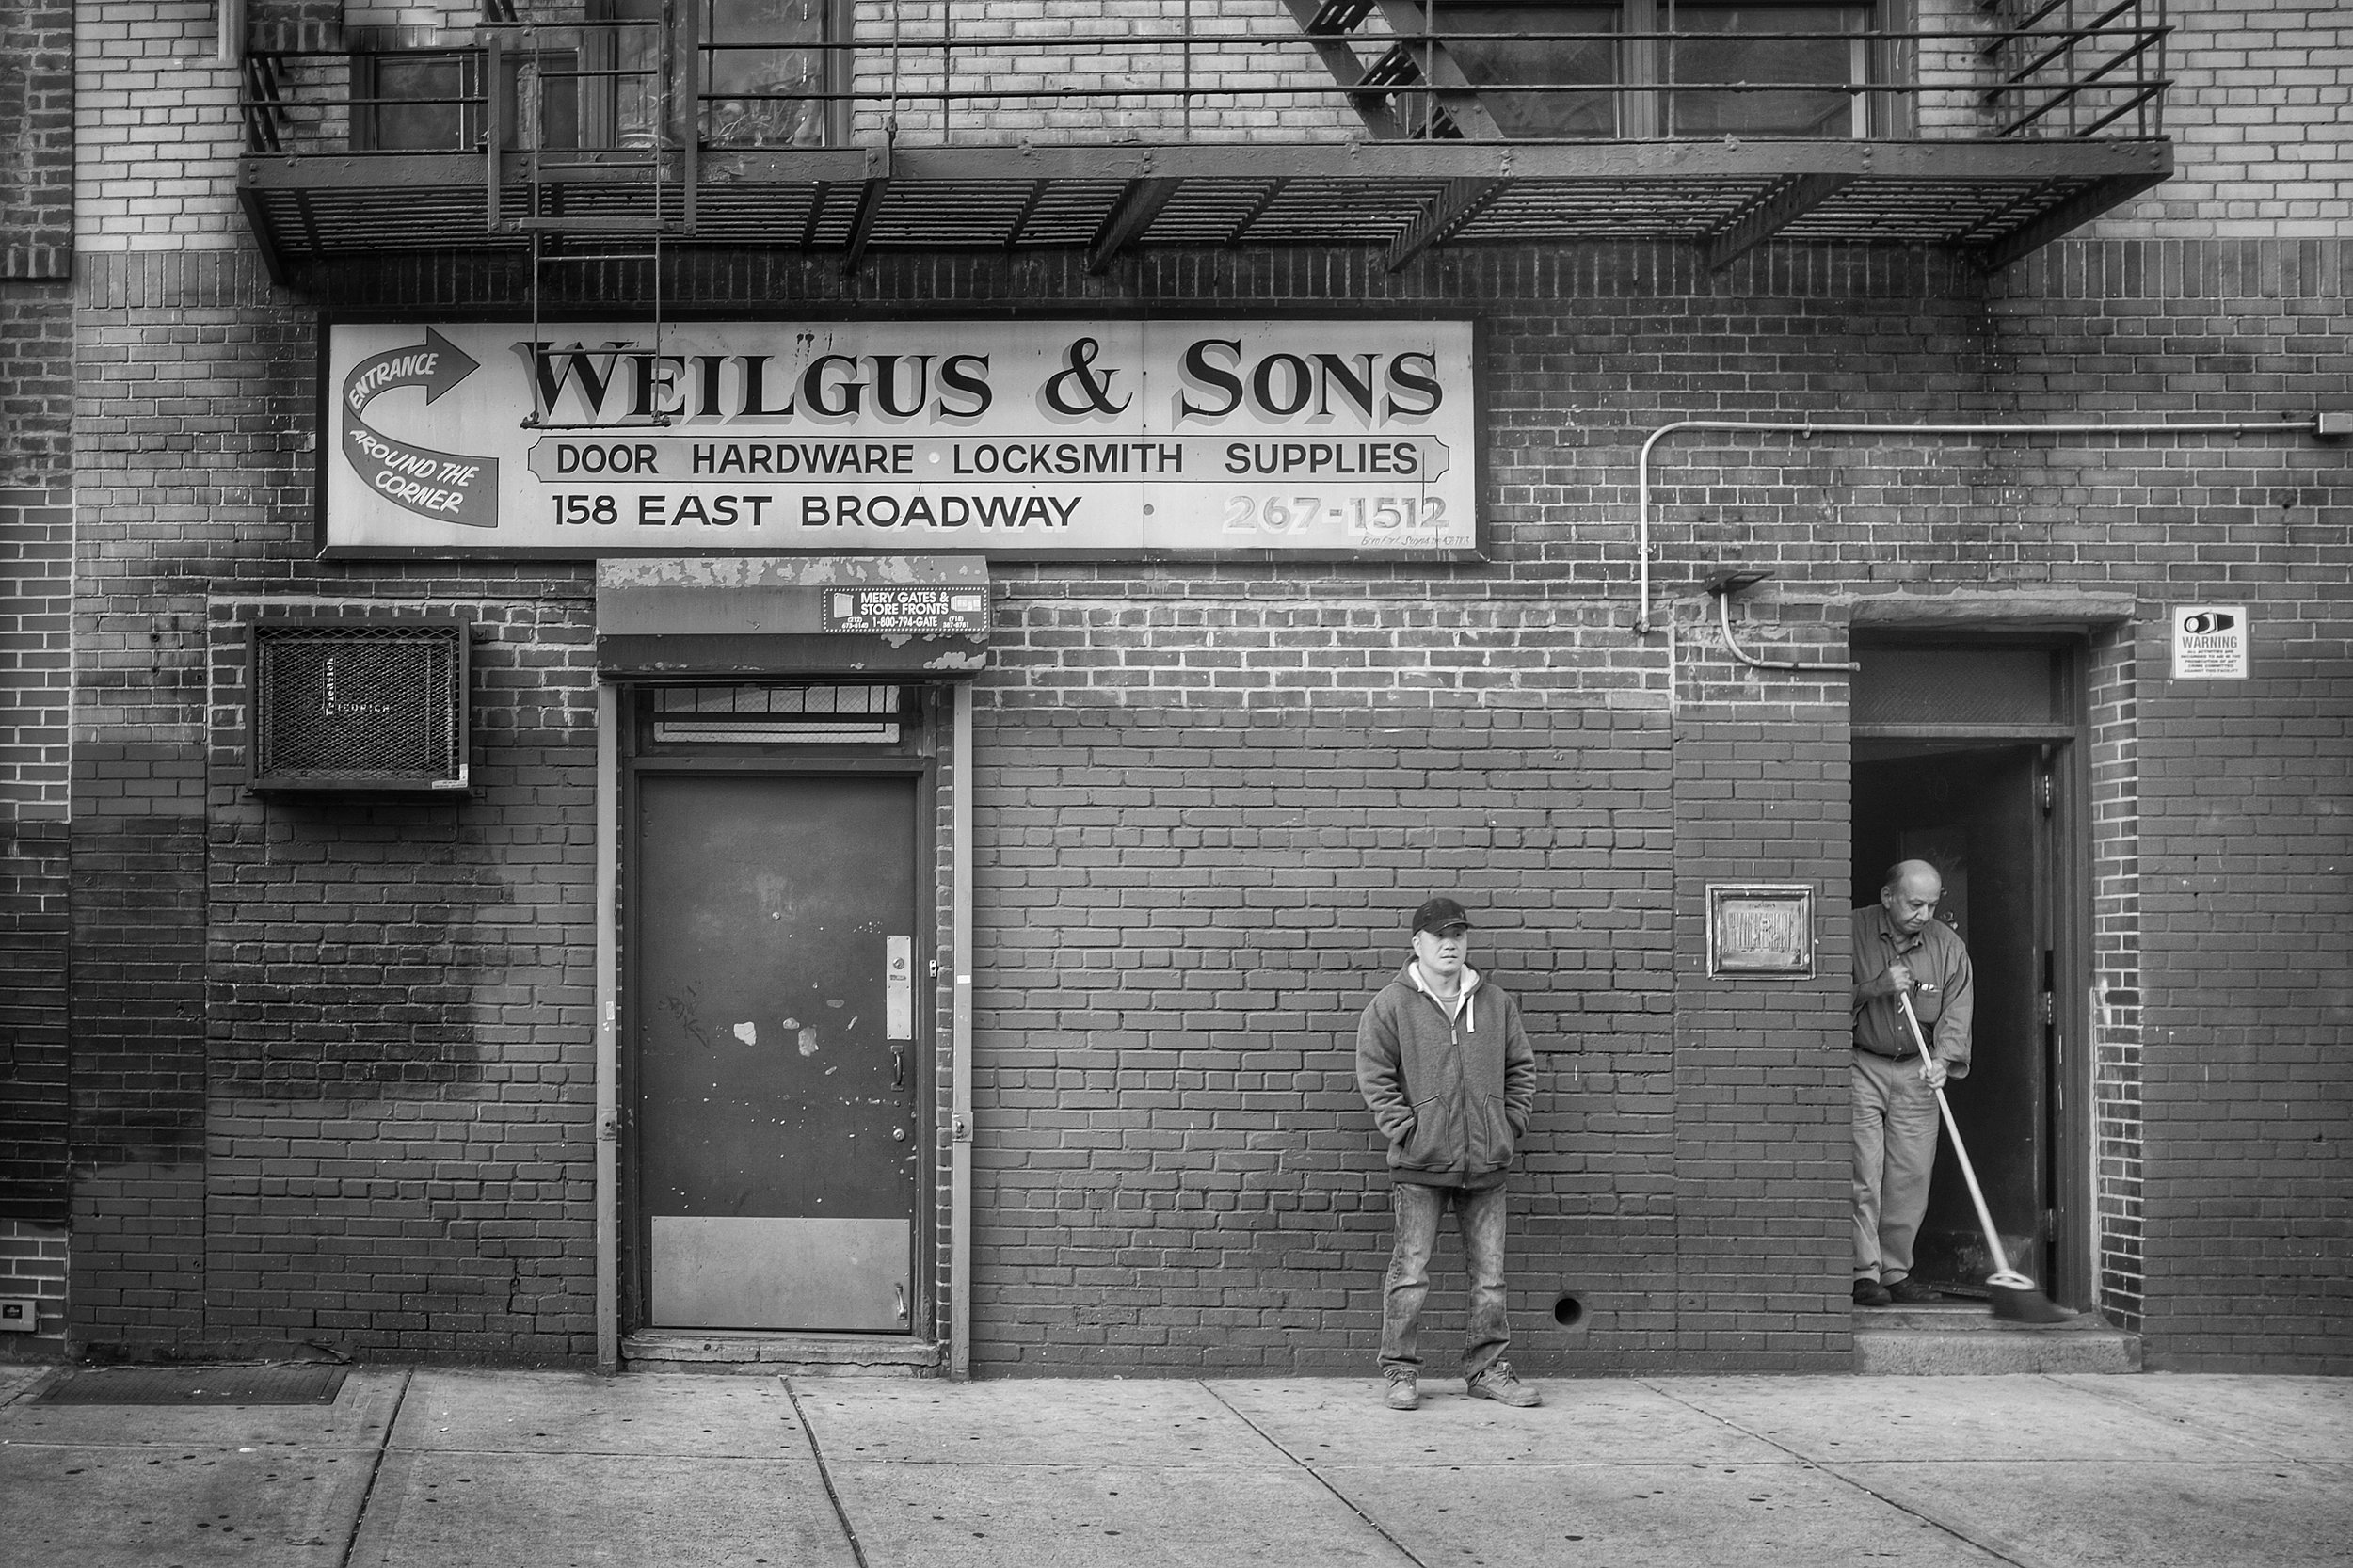 Weilgus & Sons. Canal Street. Lower East Side. New York City. 2016.